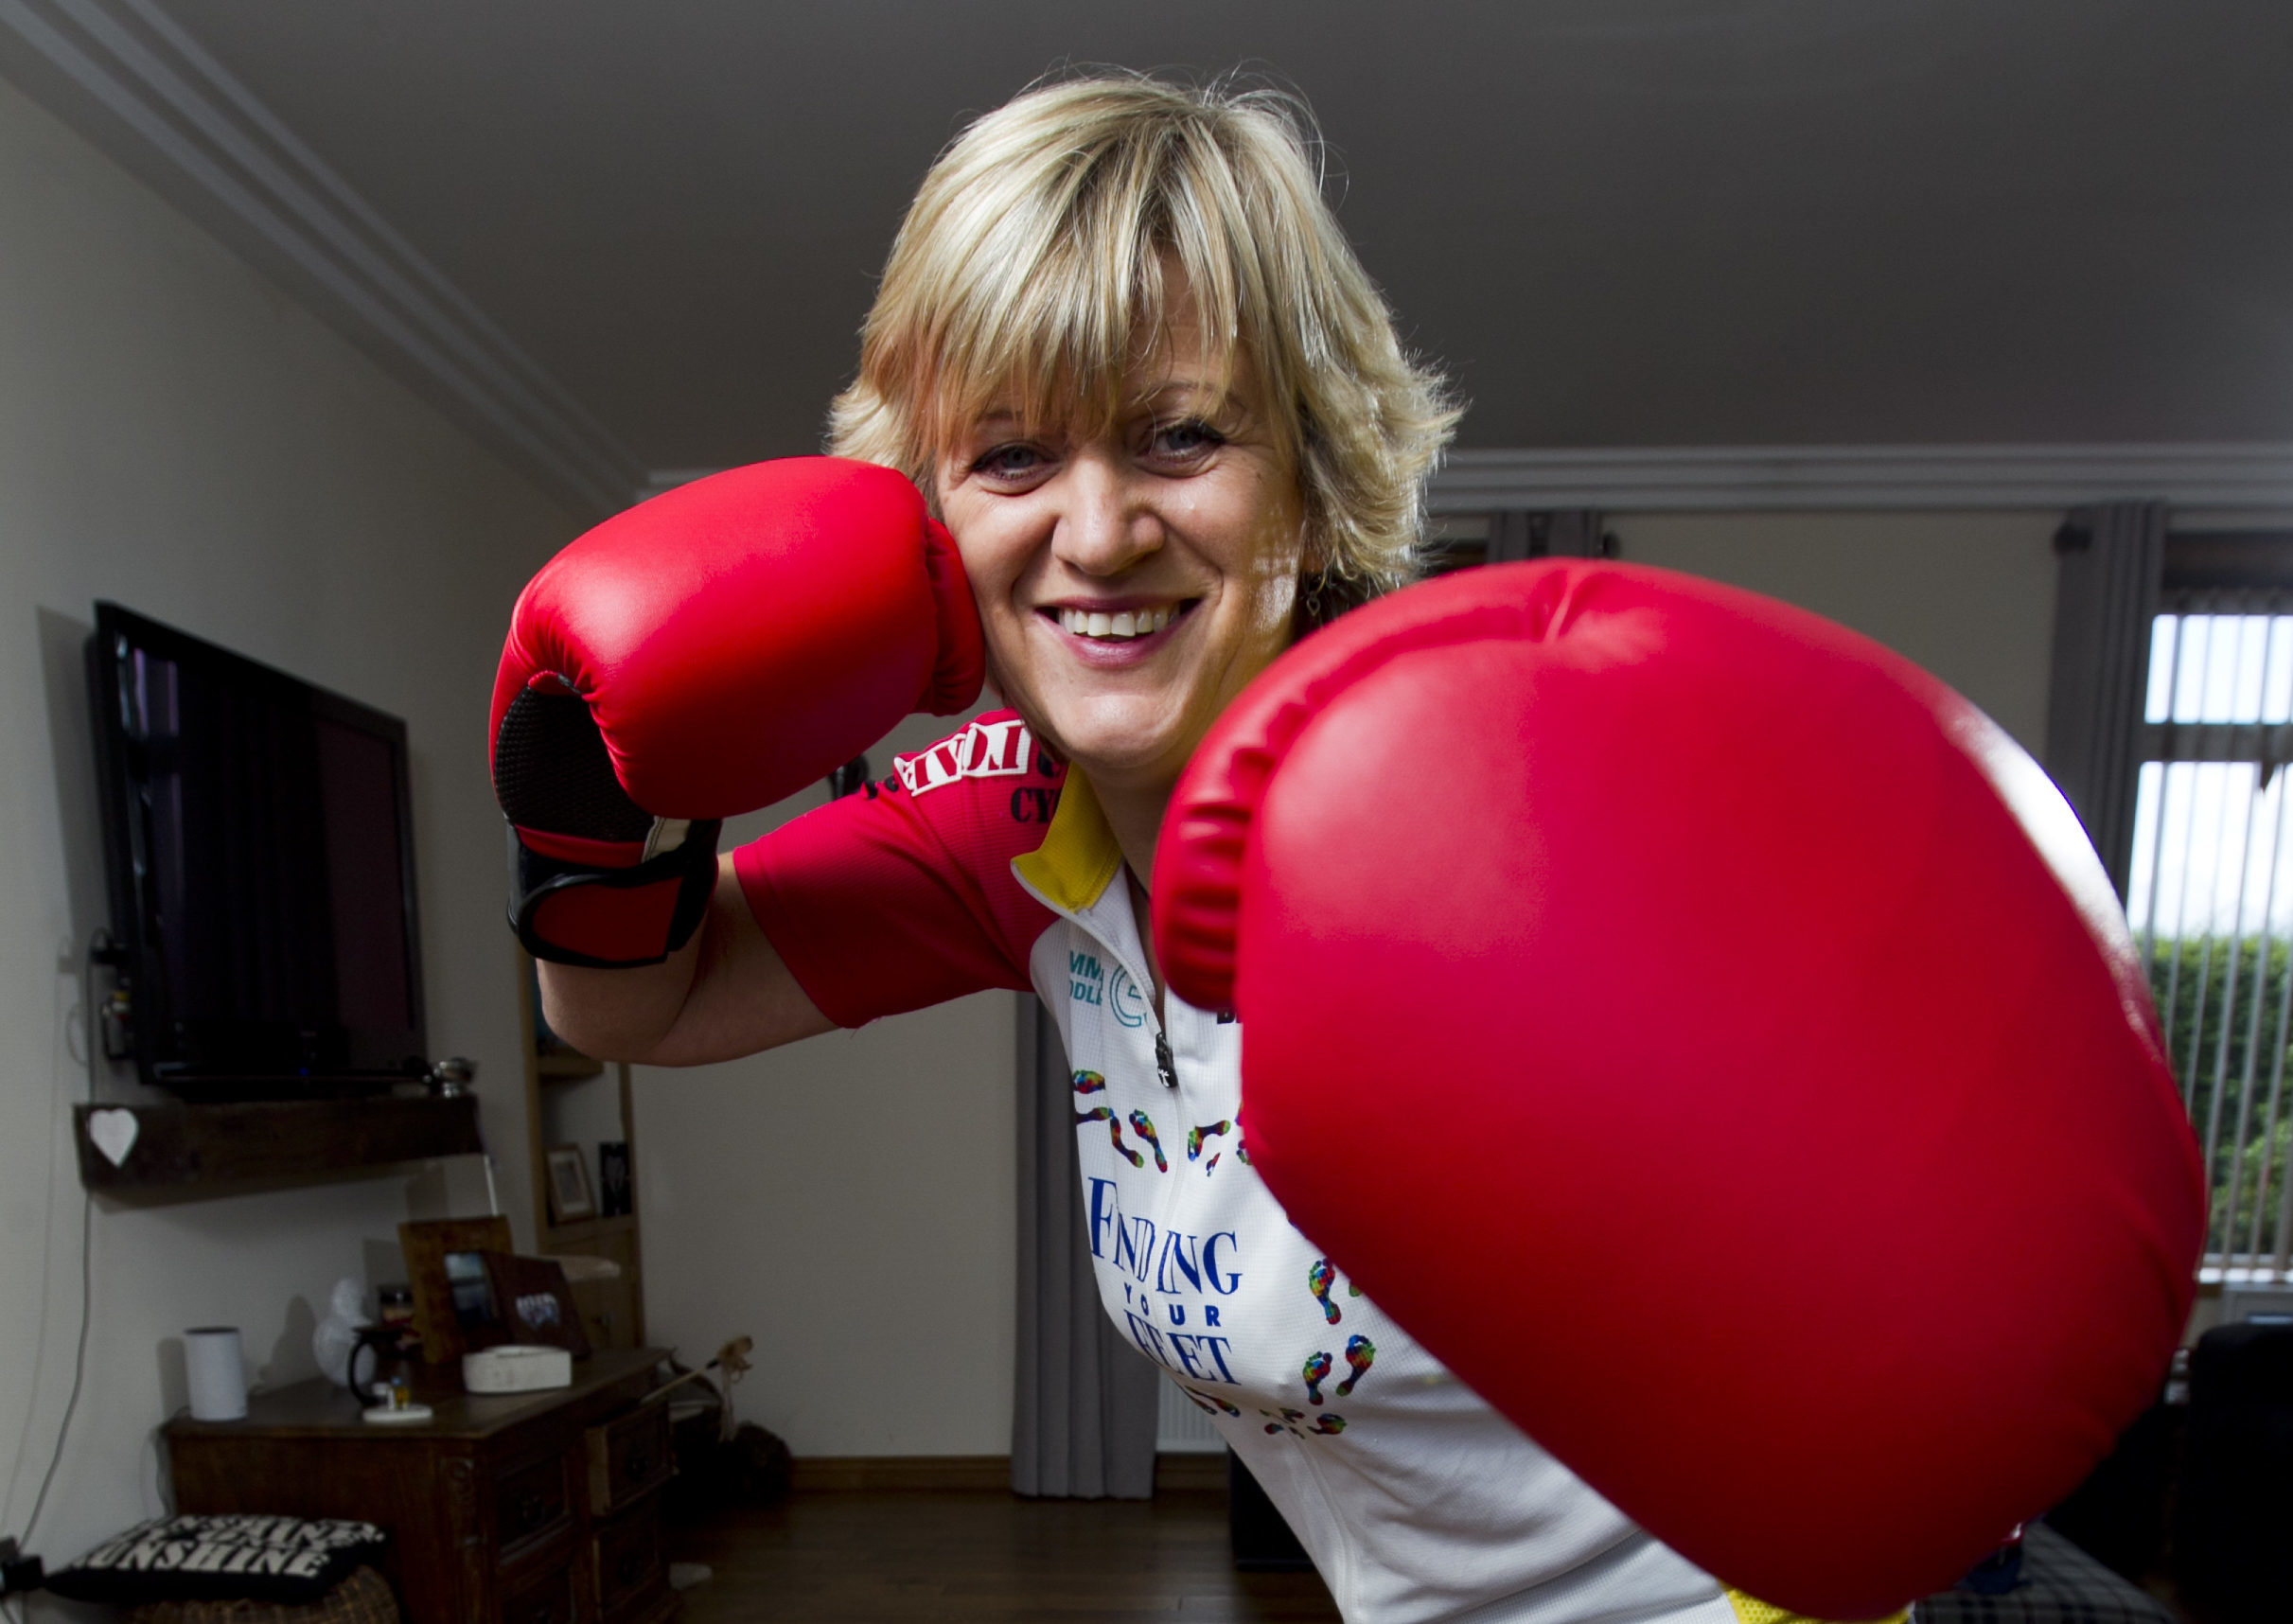 Double amputee Corinne Hutton is going to be climbing Mount Kilimanjaro raising money for her charity, Finding Your Feet. She will need to use boxing gloves to help her crawl up parts of the climb. (Andrew Cawley)